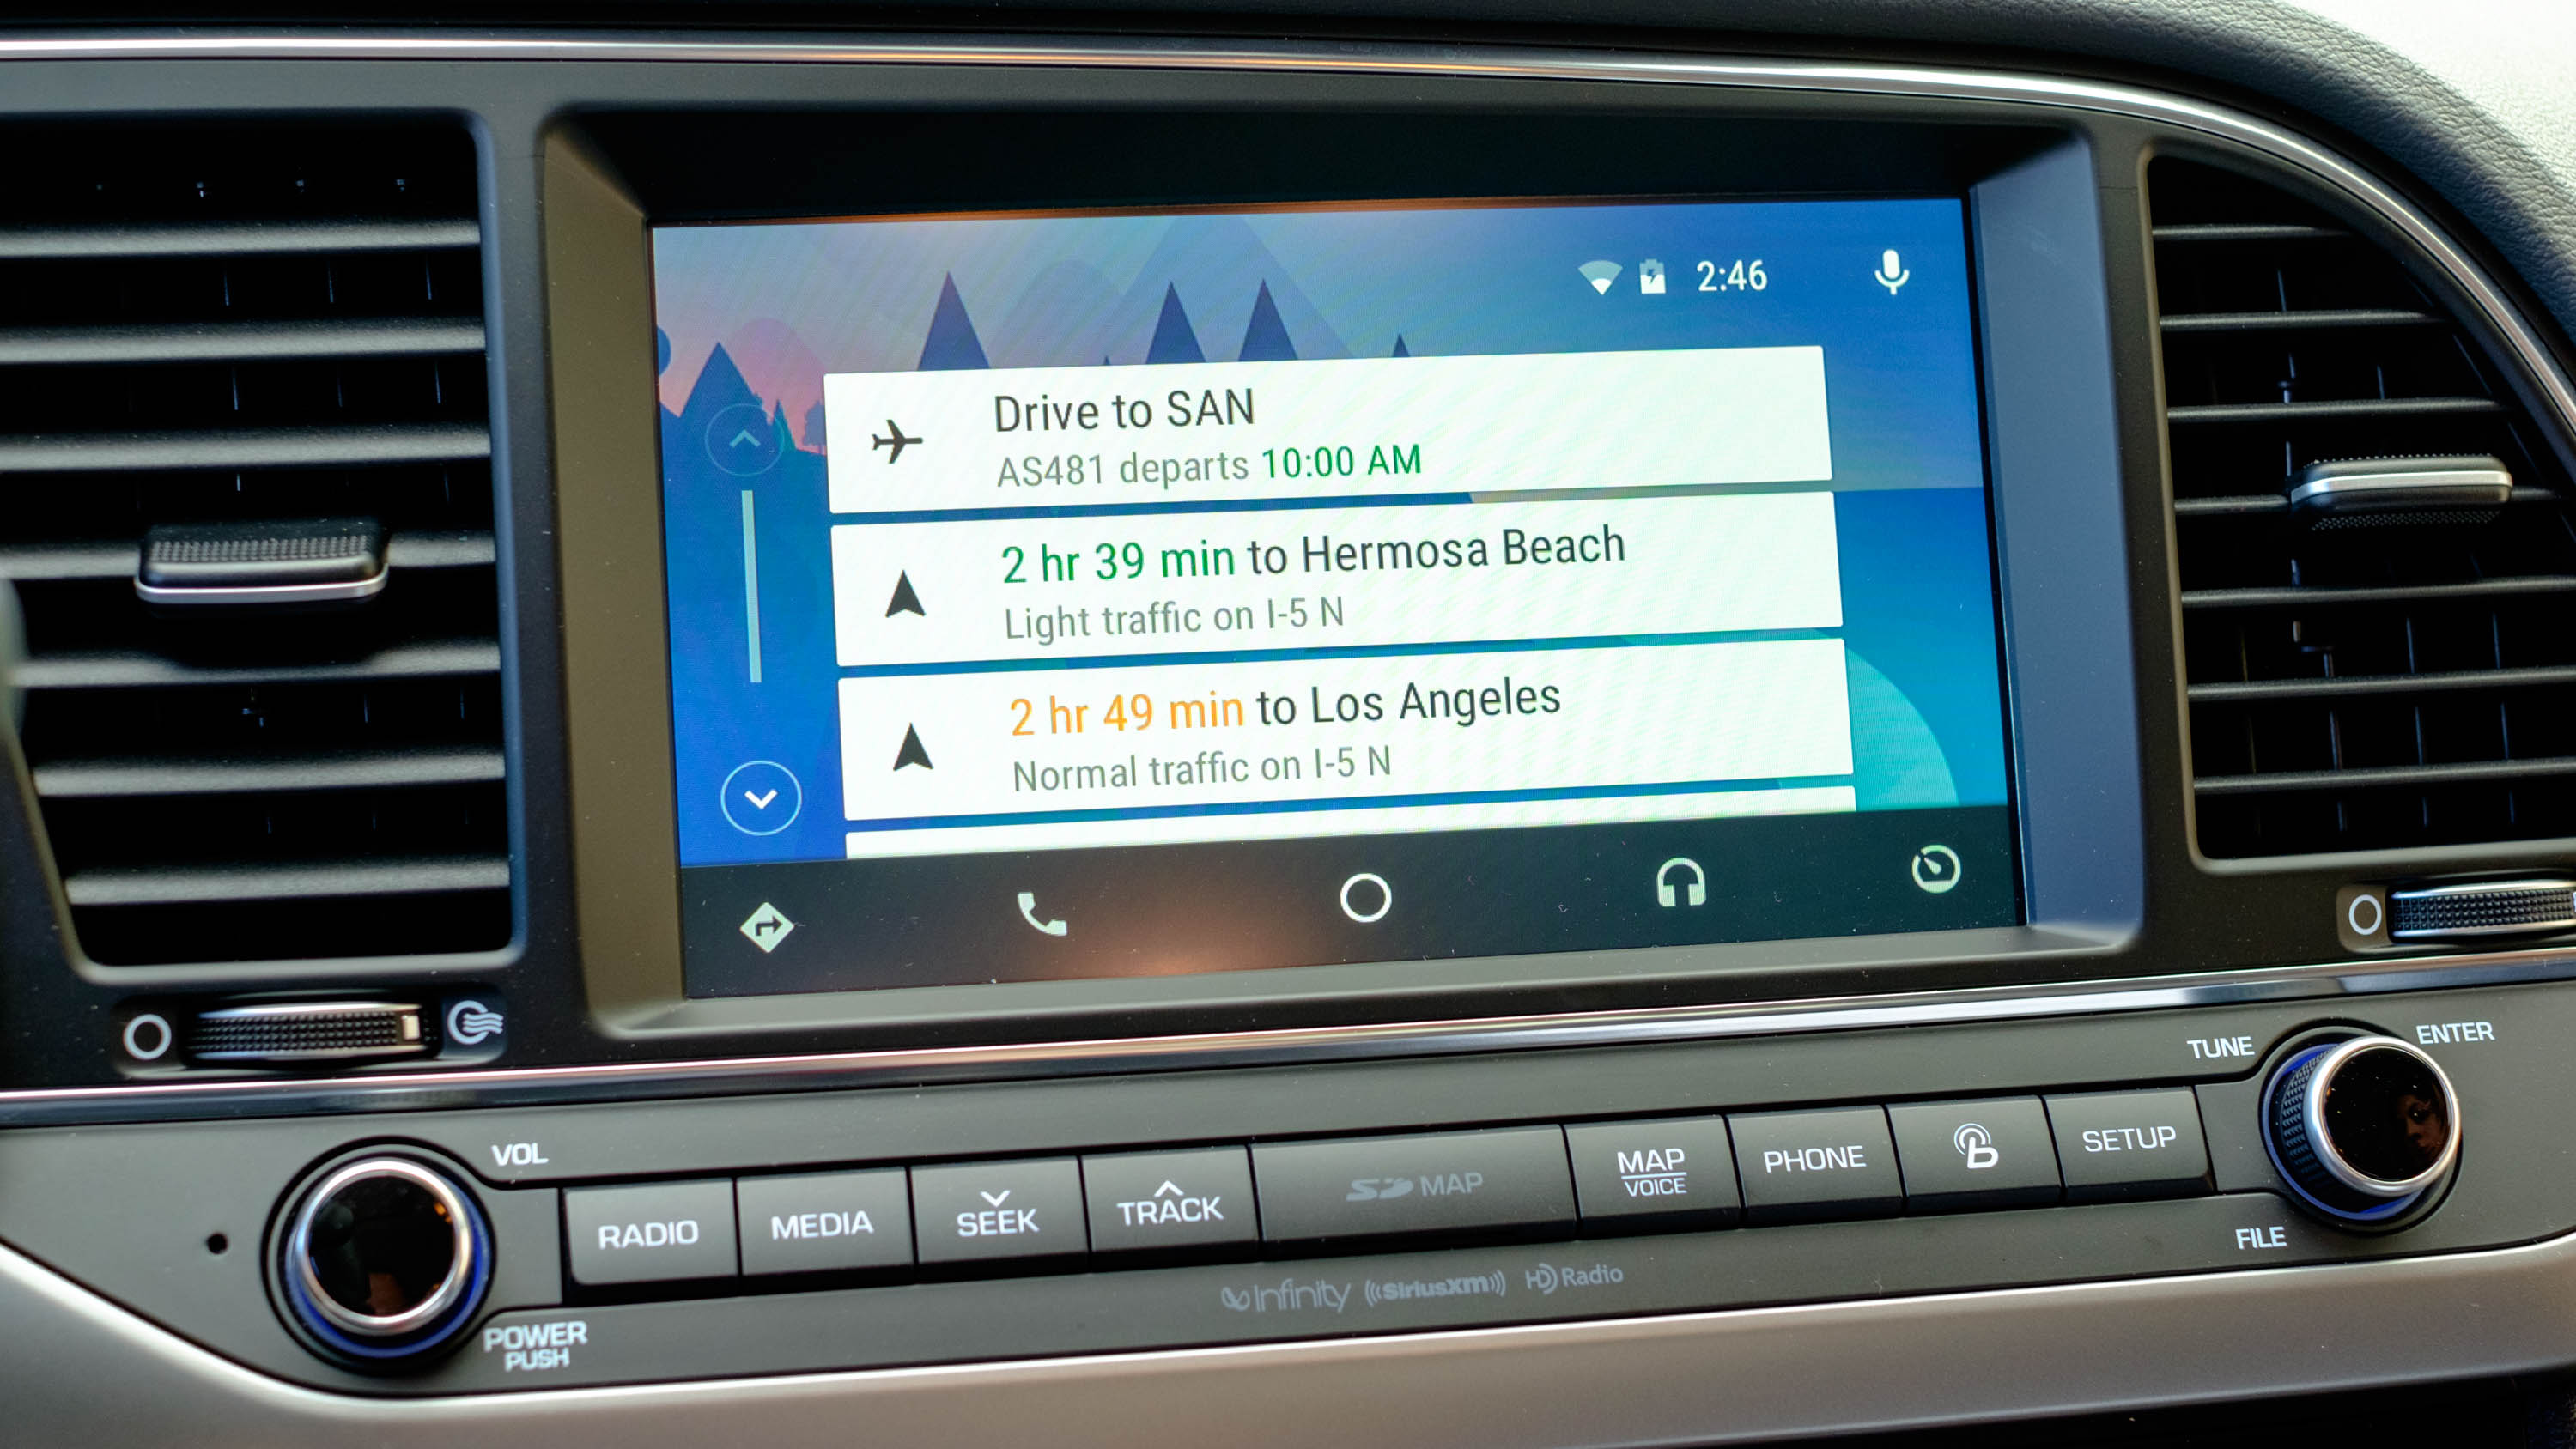 Android Auto Googles Head Unit For Cars Explained TechRadar - Los angeles navigation map